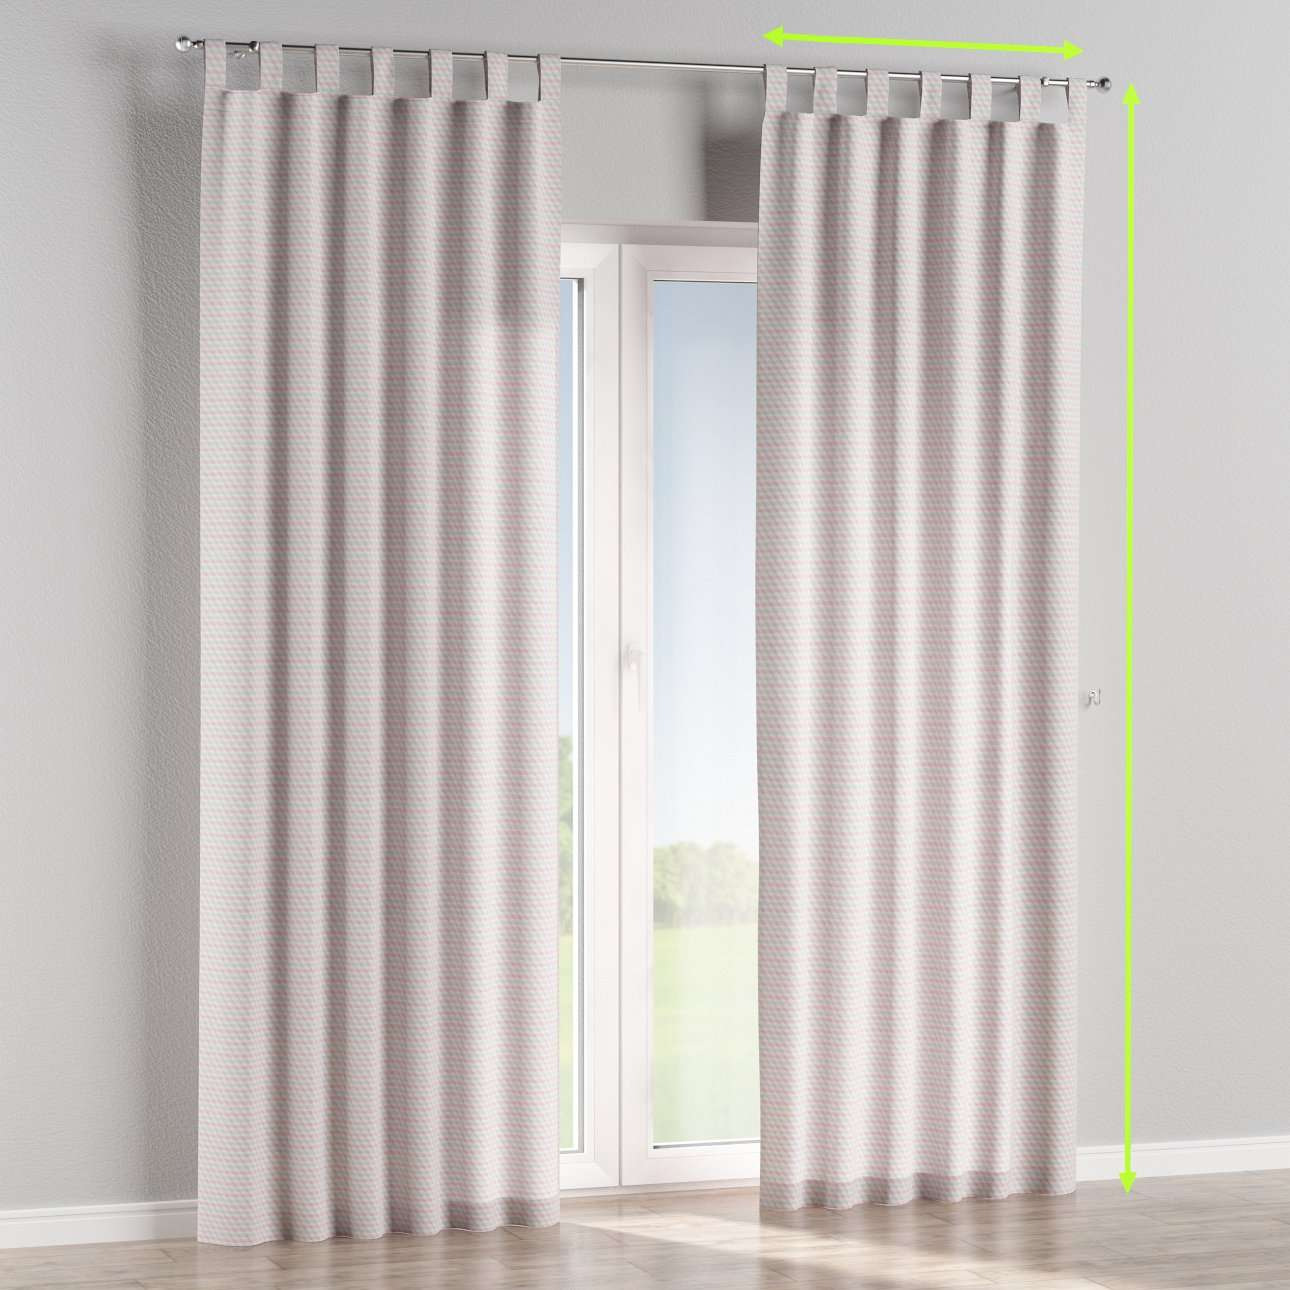 Tab top curtains in collection Rustica, fabric: 140-30